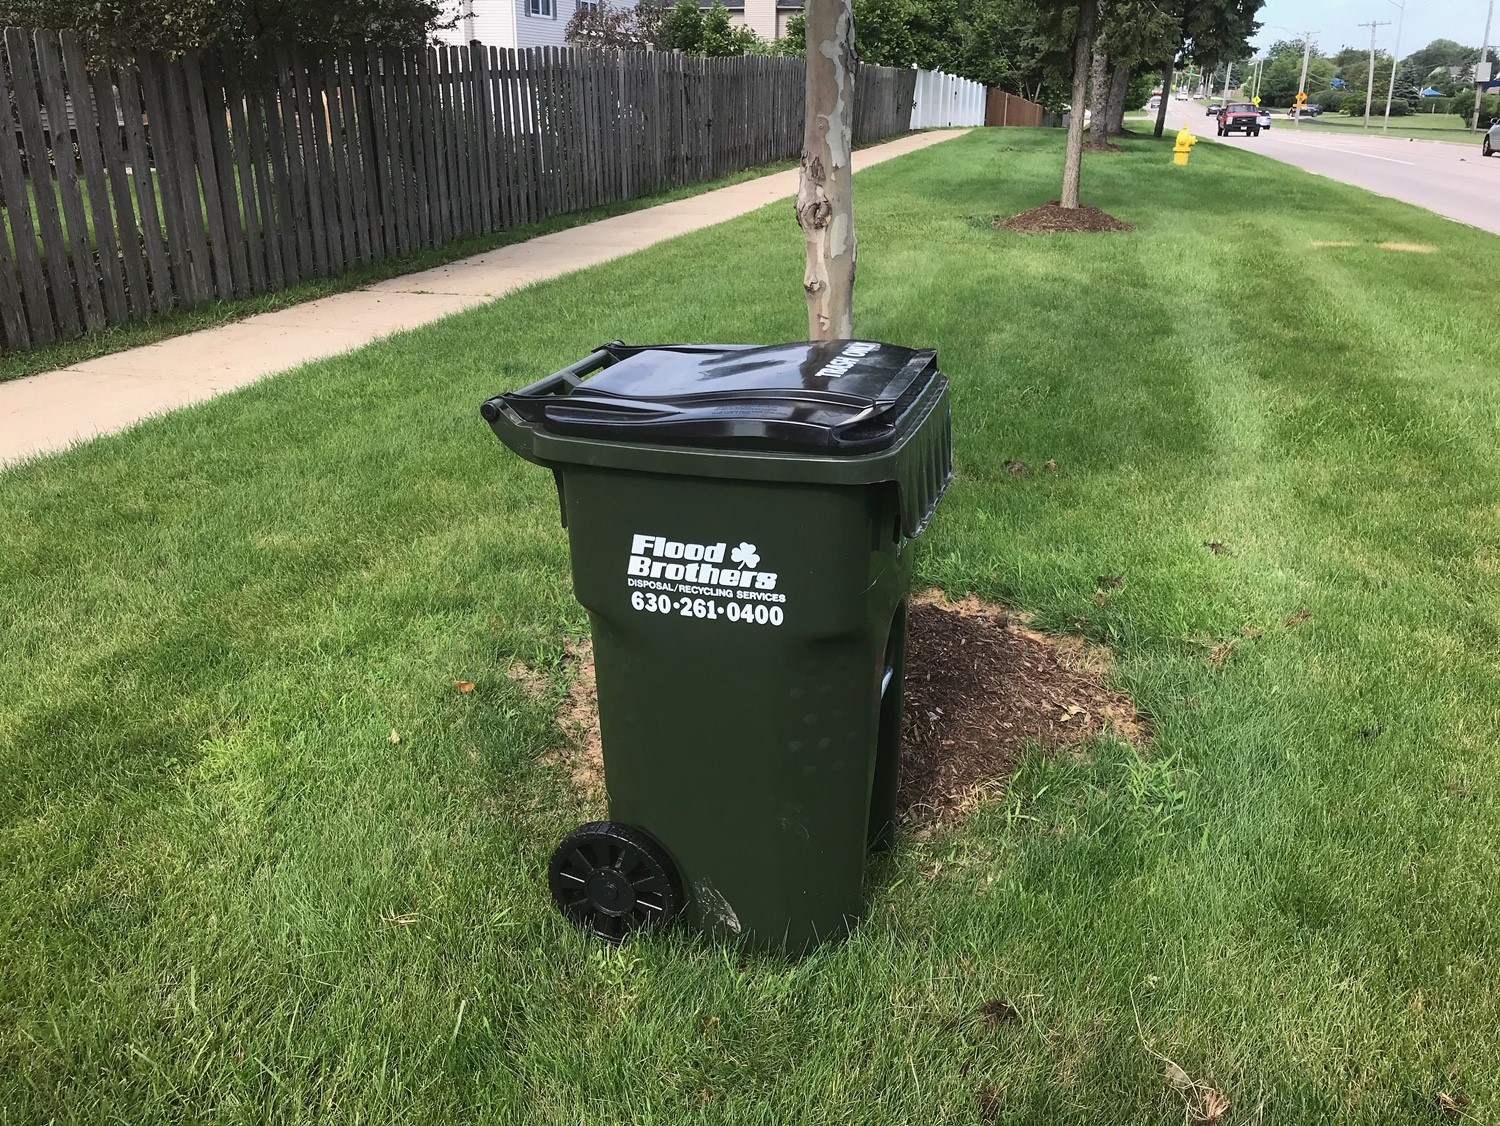 Refuse Pickup Time Changed Due to Heat Advisory